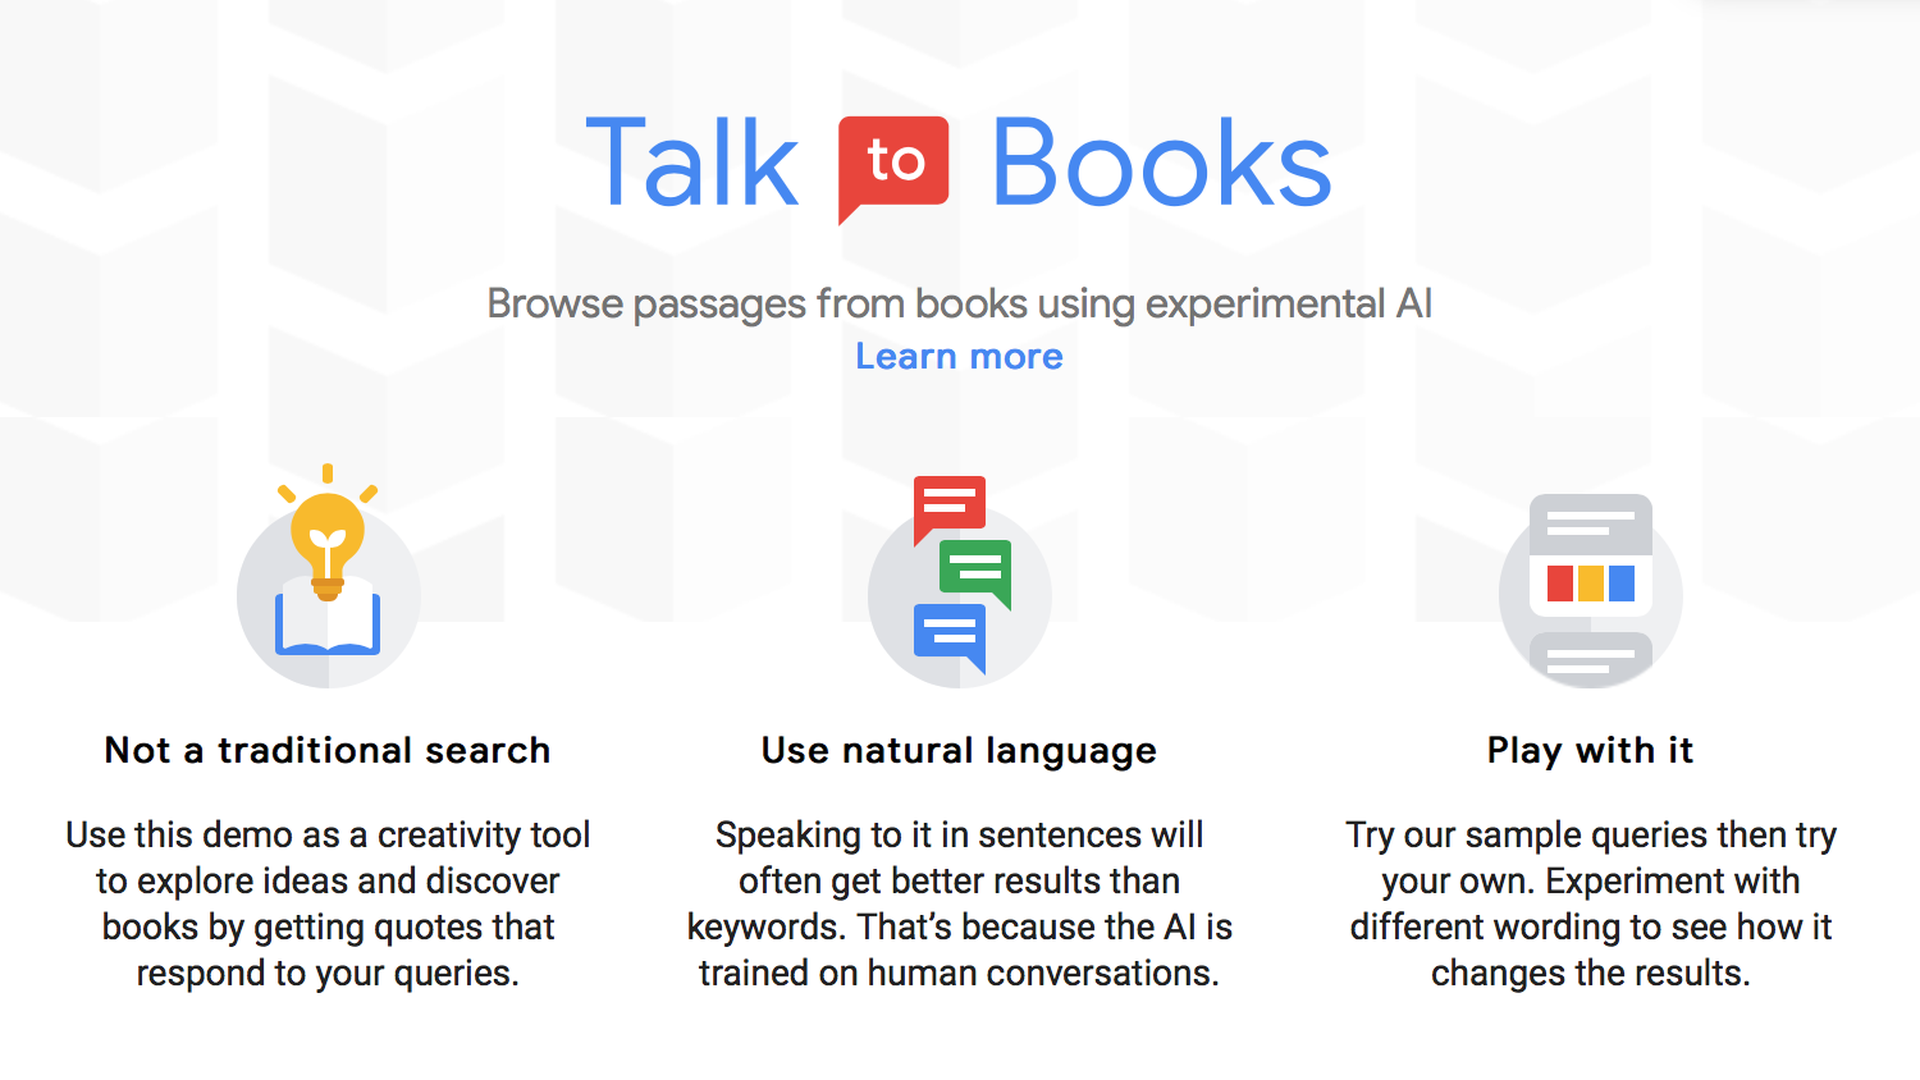 Web page displaying Google's Talk to Books experimental tool